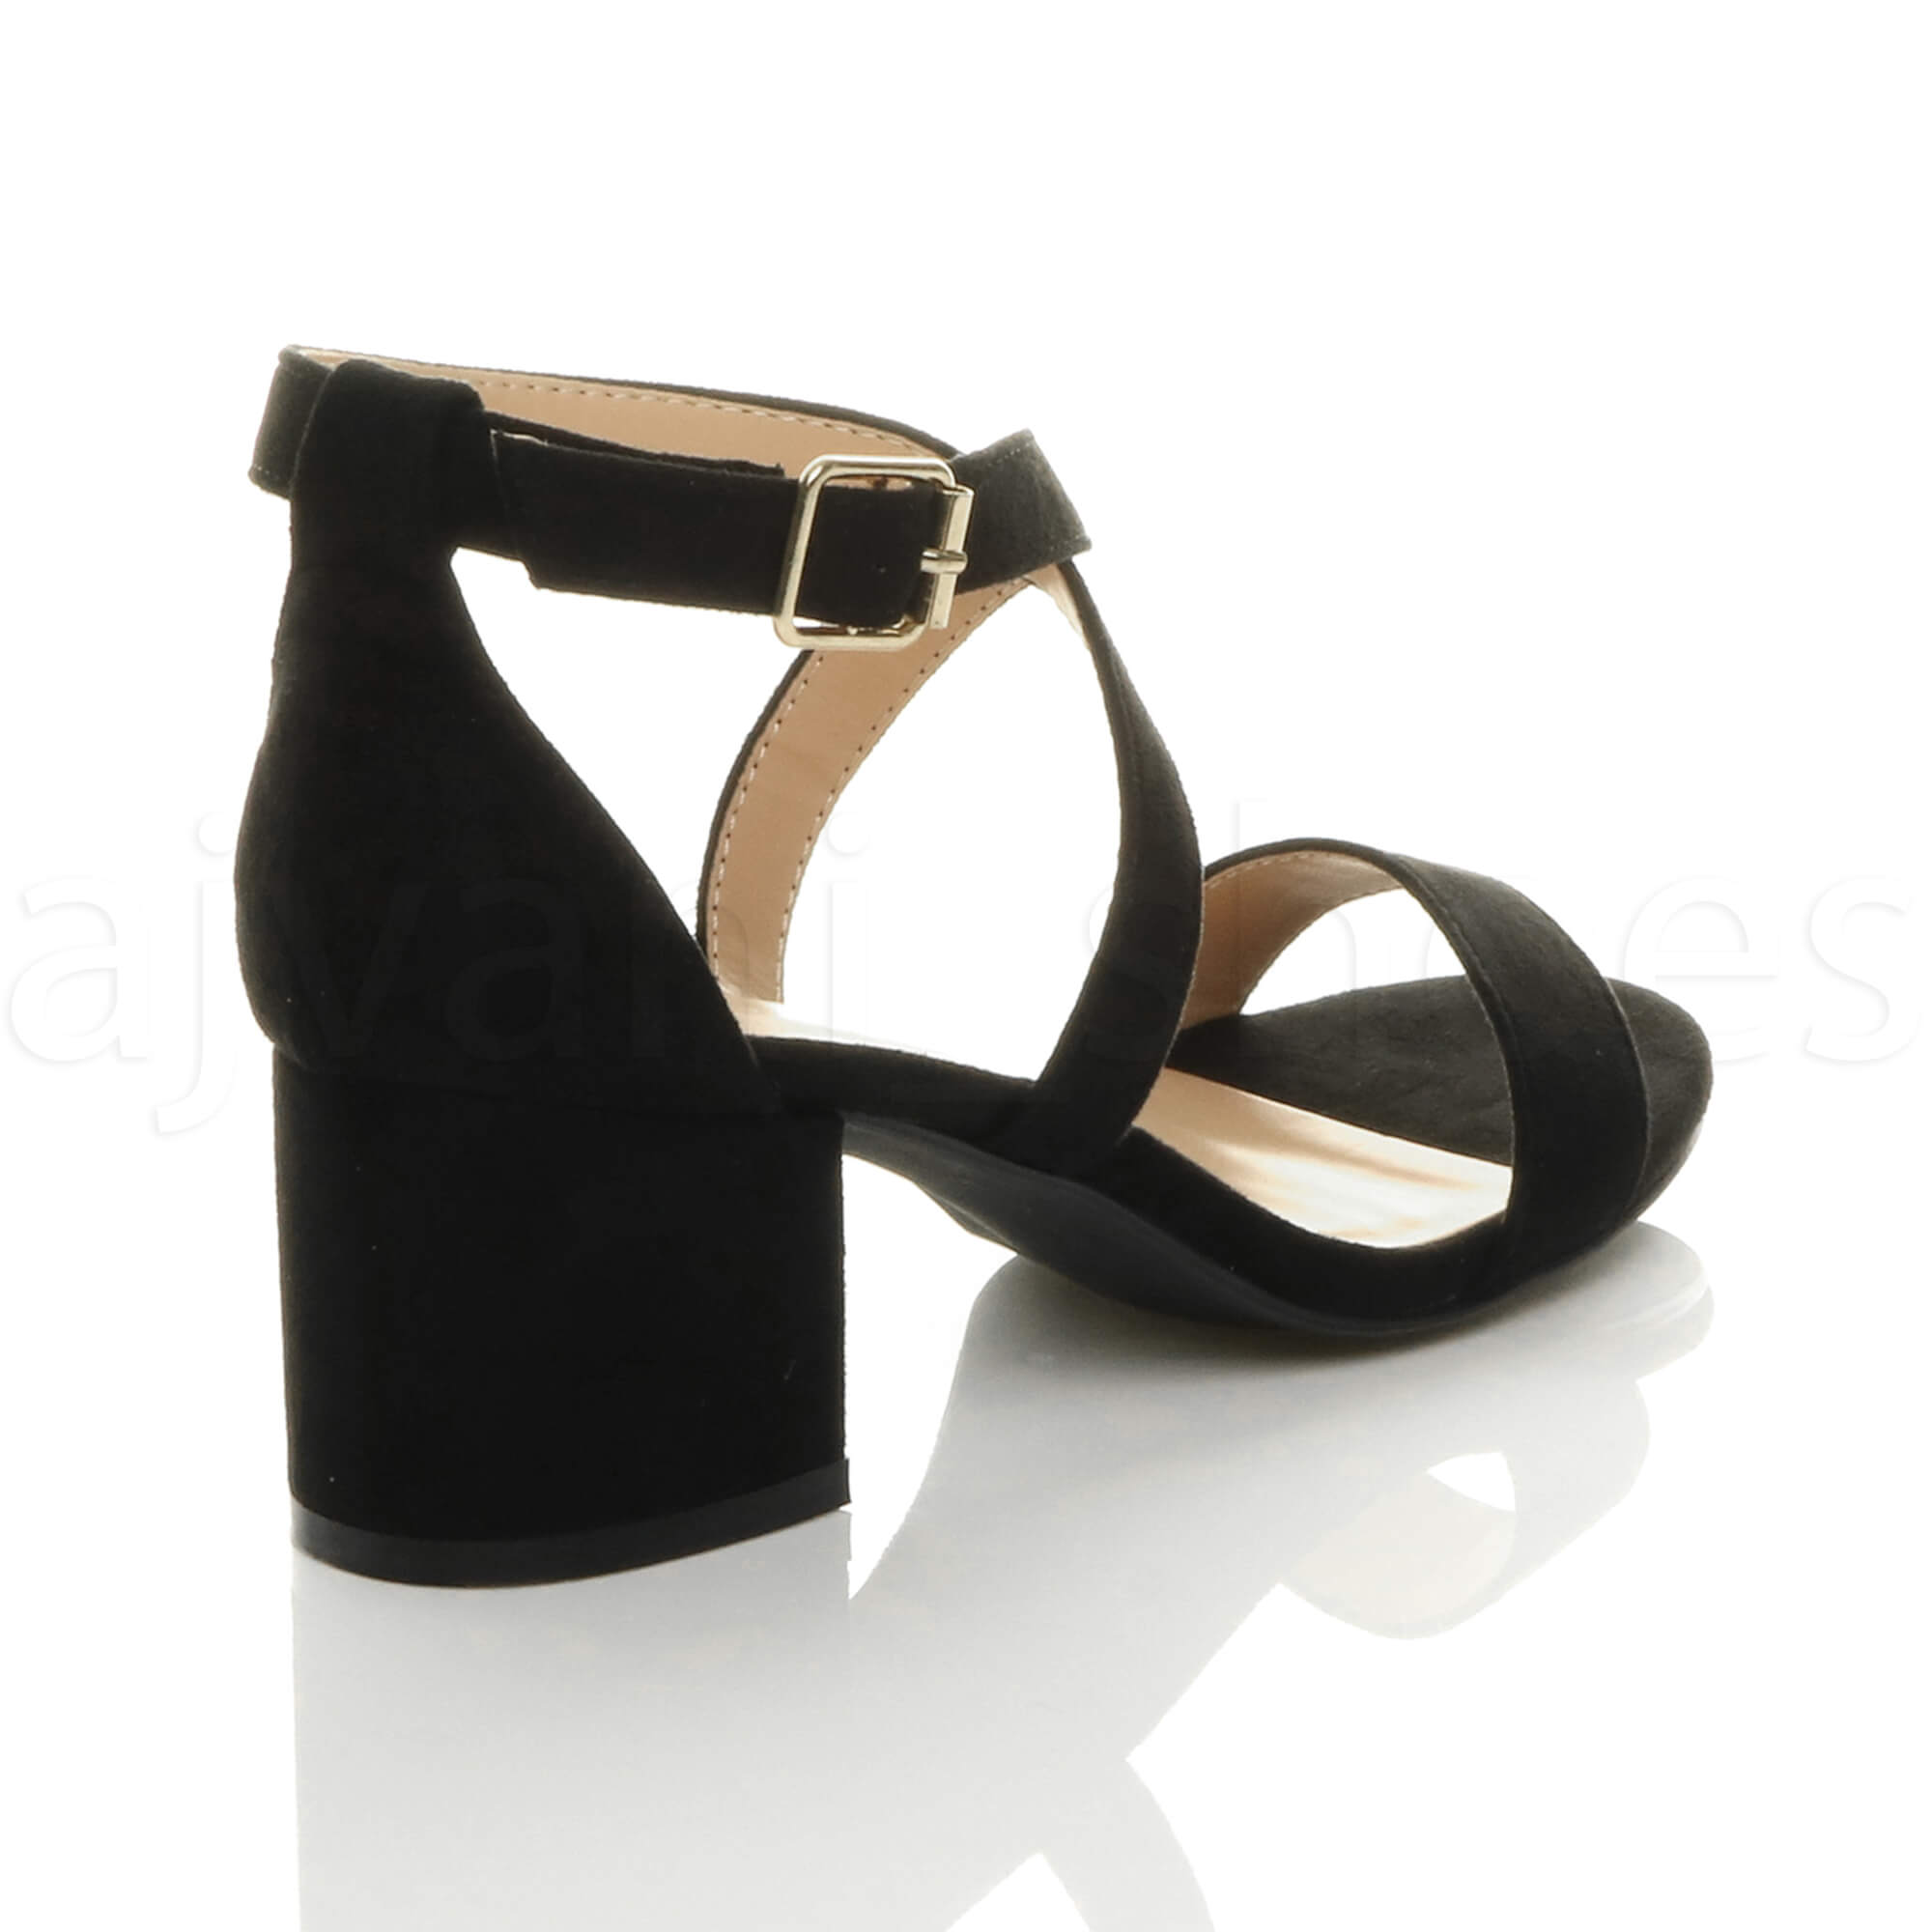 WOMENS-LADIES-MID-LOW-BLOCK-HEEL-CROSS-STRAPS-PARTY-STRAPPY-SANDALS-SHOES-SIZE thumbnail 7